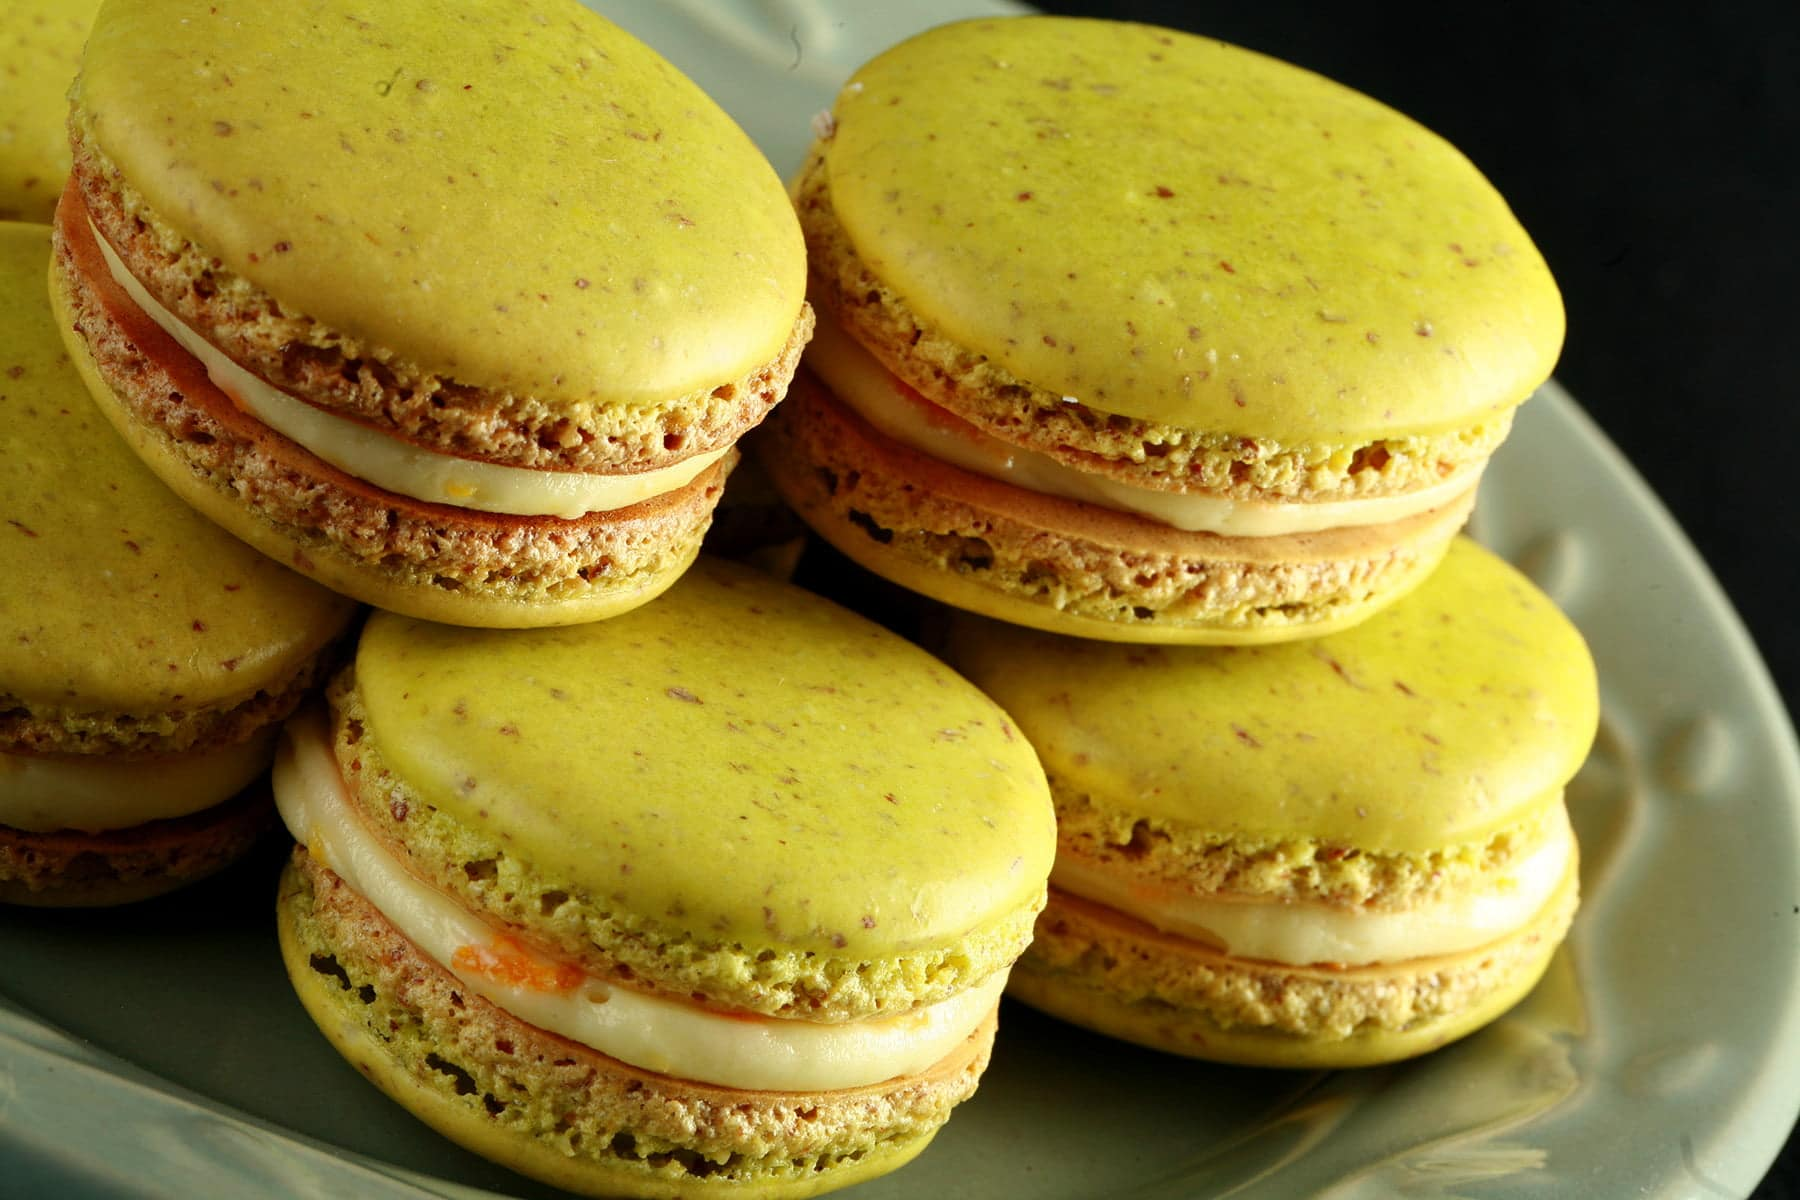 A small green plate is piled high with bright lime green Citrus Hop Macarons. There is a fresh hop flower on the plate, and bits of orange zest visible in the filling of the macarons.